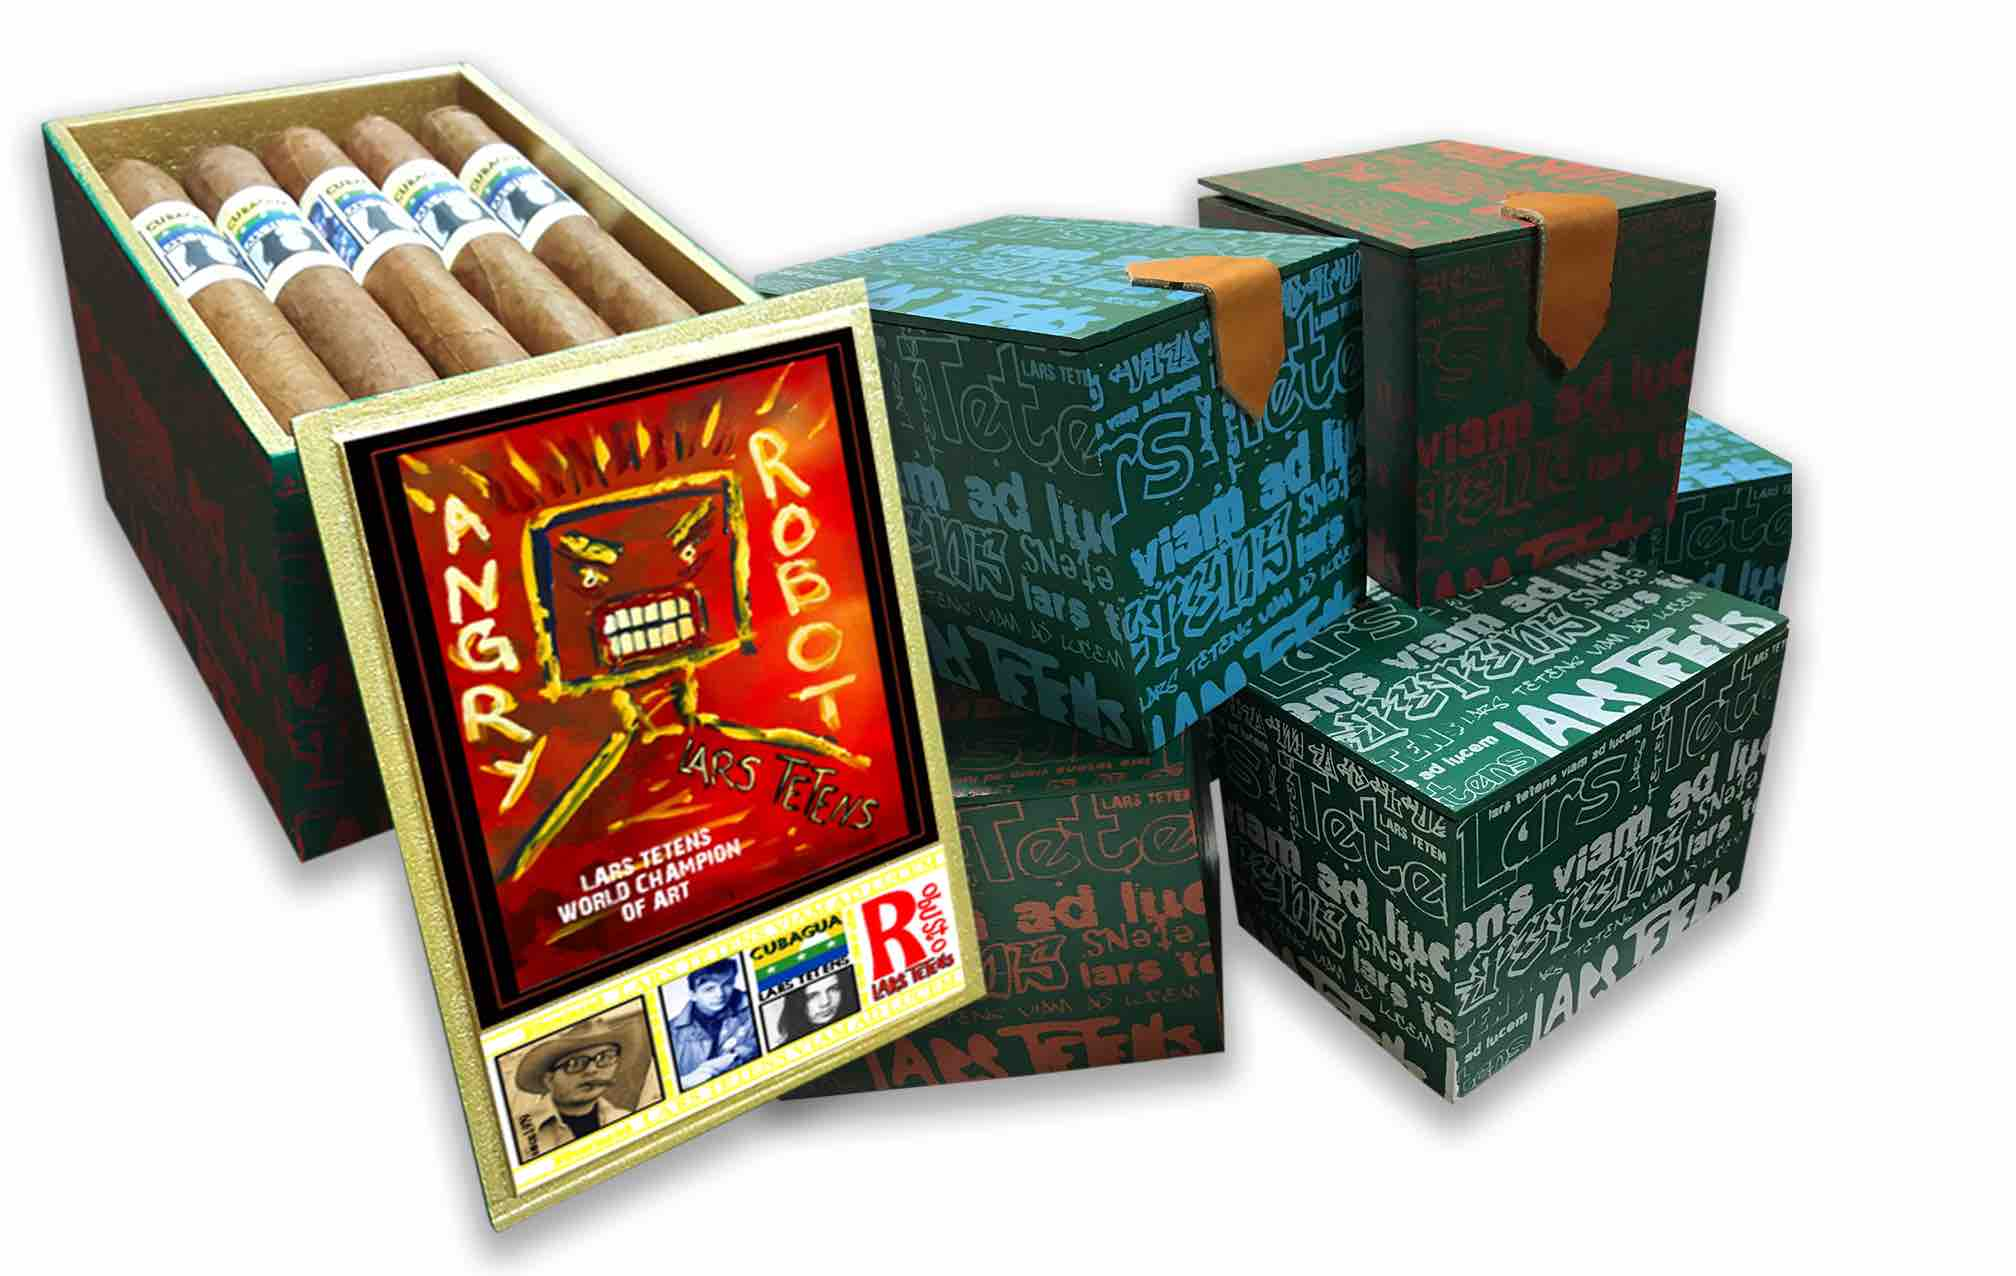 Cigar News: Lars Tetens Brands Announces Relaunched Lines for 2019 IPCPR